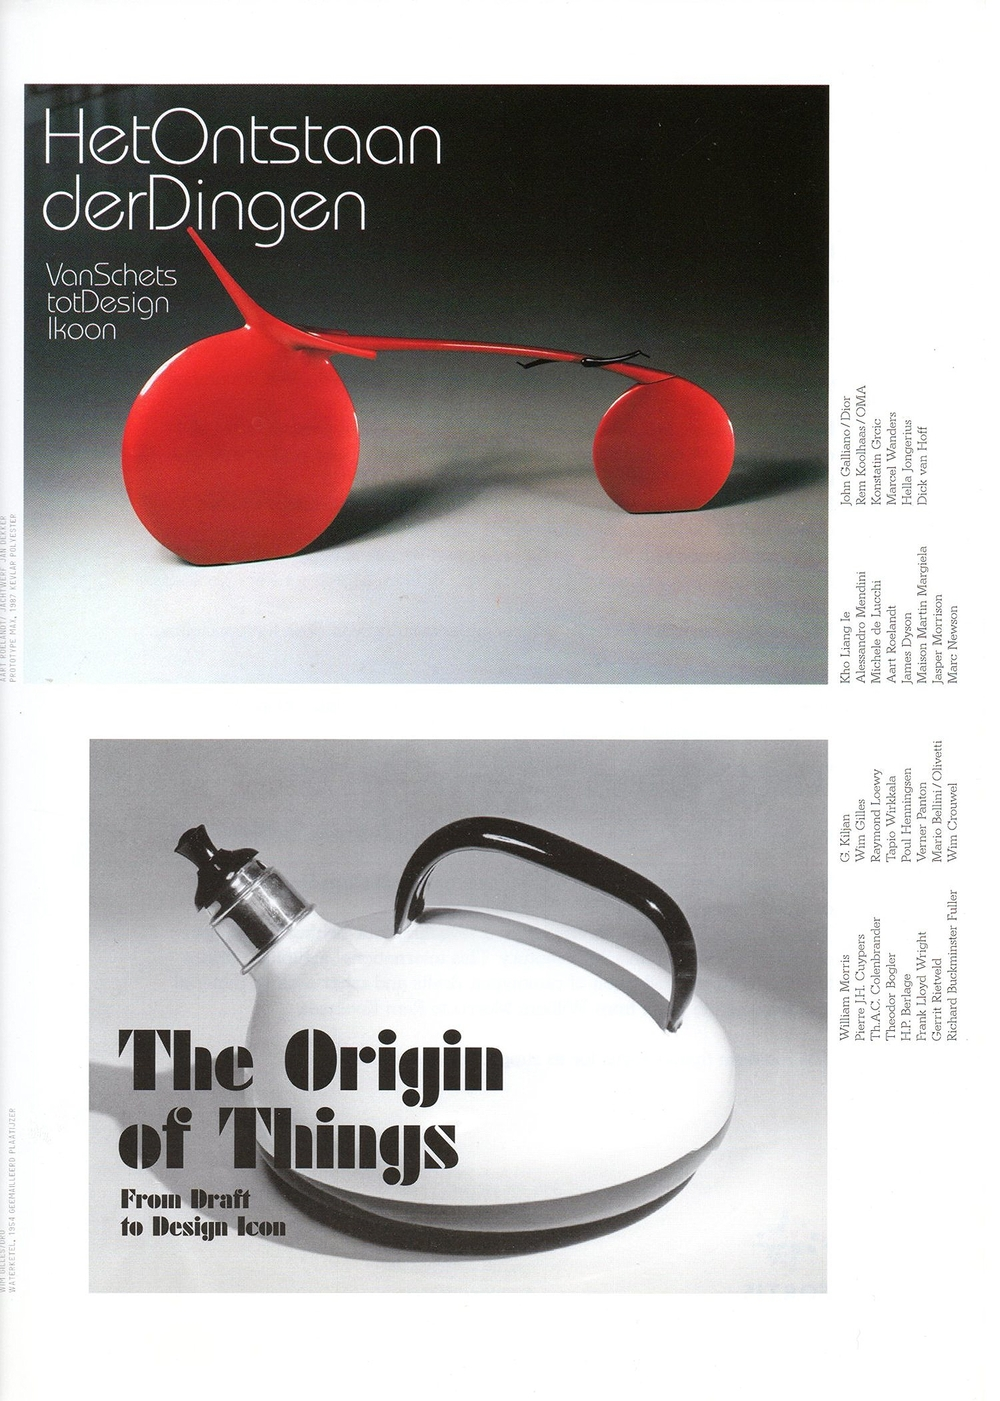 The origin of things (from draft to design icon) museum Boijmans Van Beuningen, Rotterdam 2003